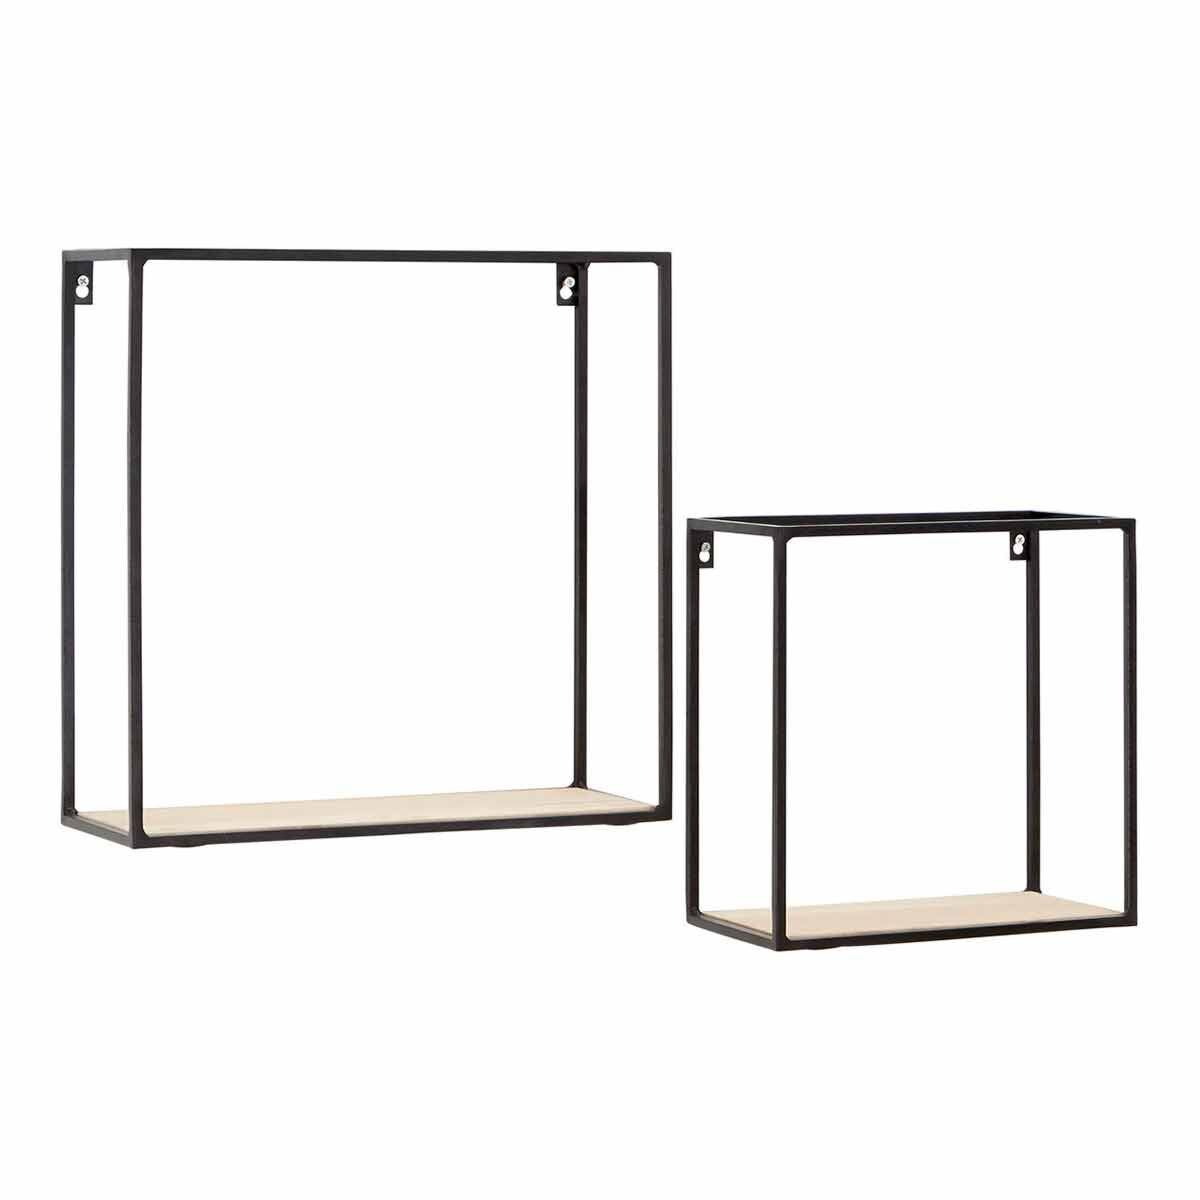 Premier Housewares Brixton Cuboid Shelf Set of 2